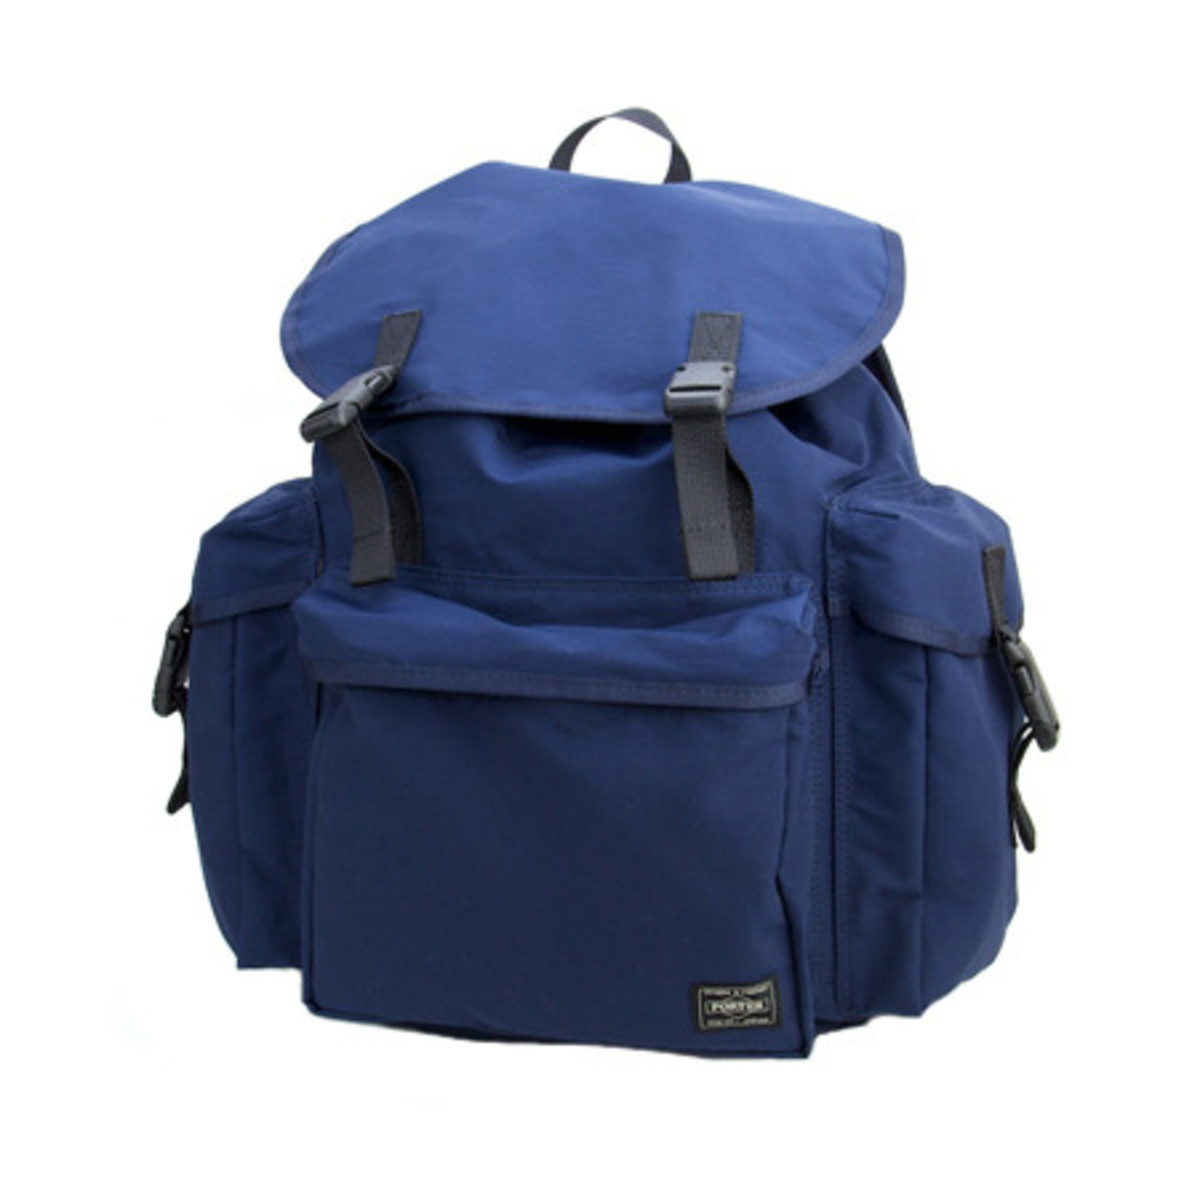 ruck-sack-navy